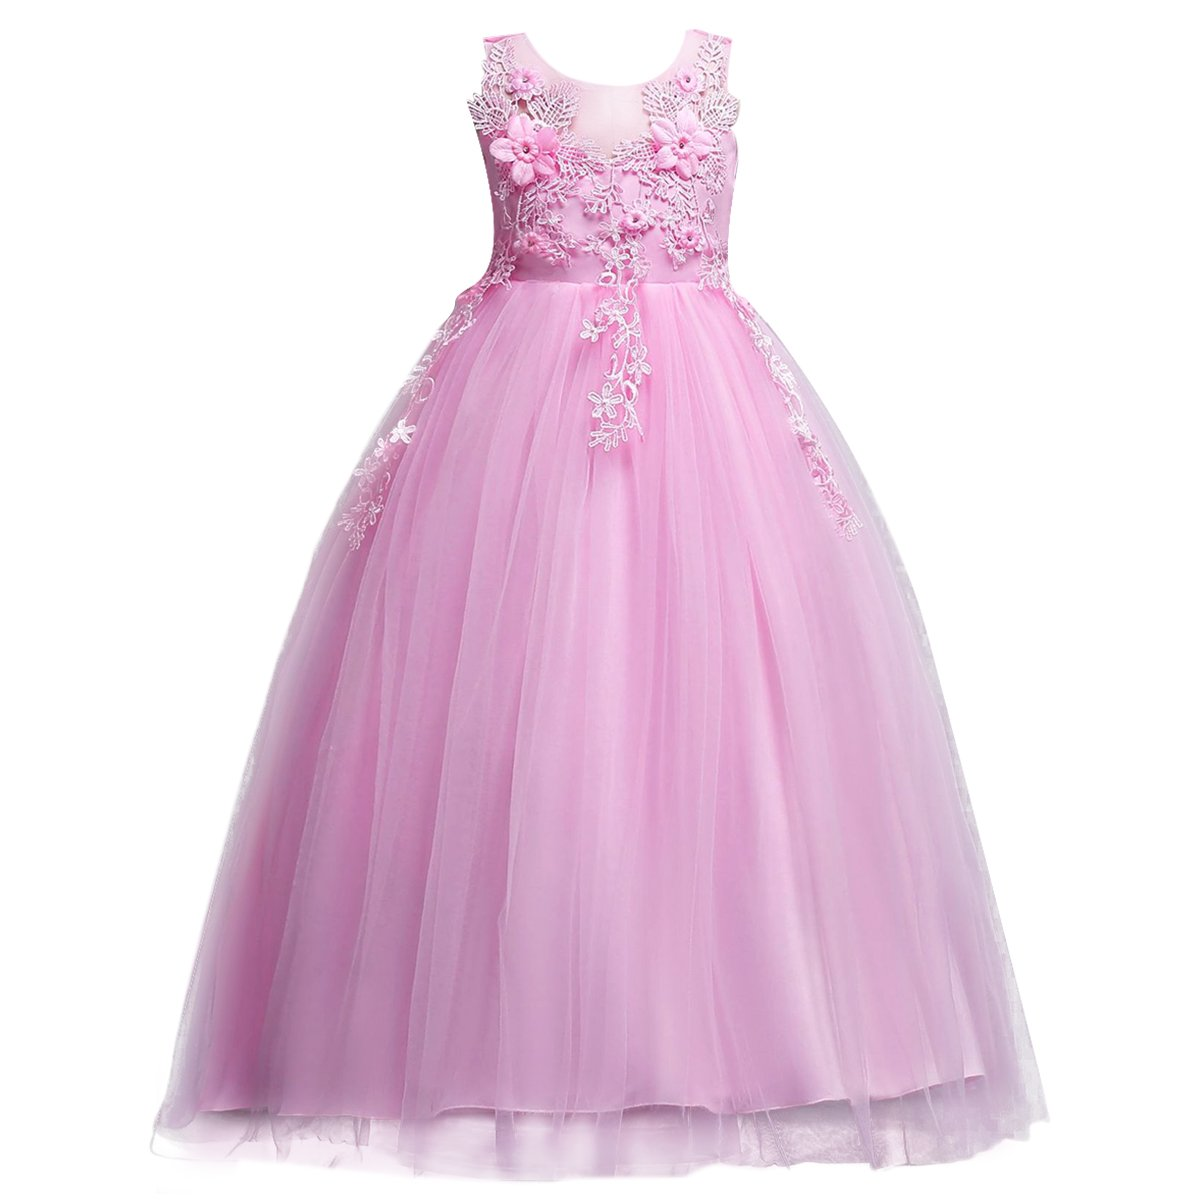 Reliable Flower Girl Dresses Princess Prints A Christmas Holiday Performance Dress Girl Christmas Party Banquet Dress Superior Materials Wedding Party Dress Weddings & Events